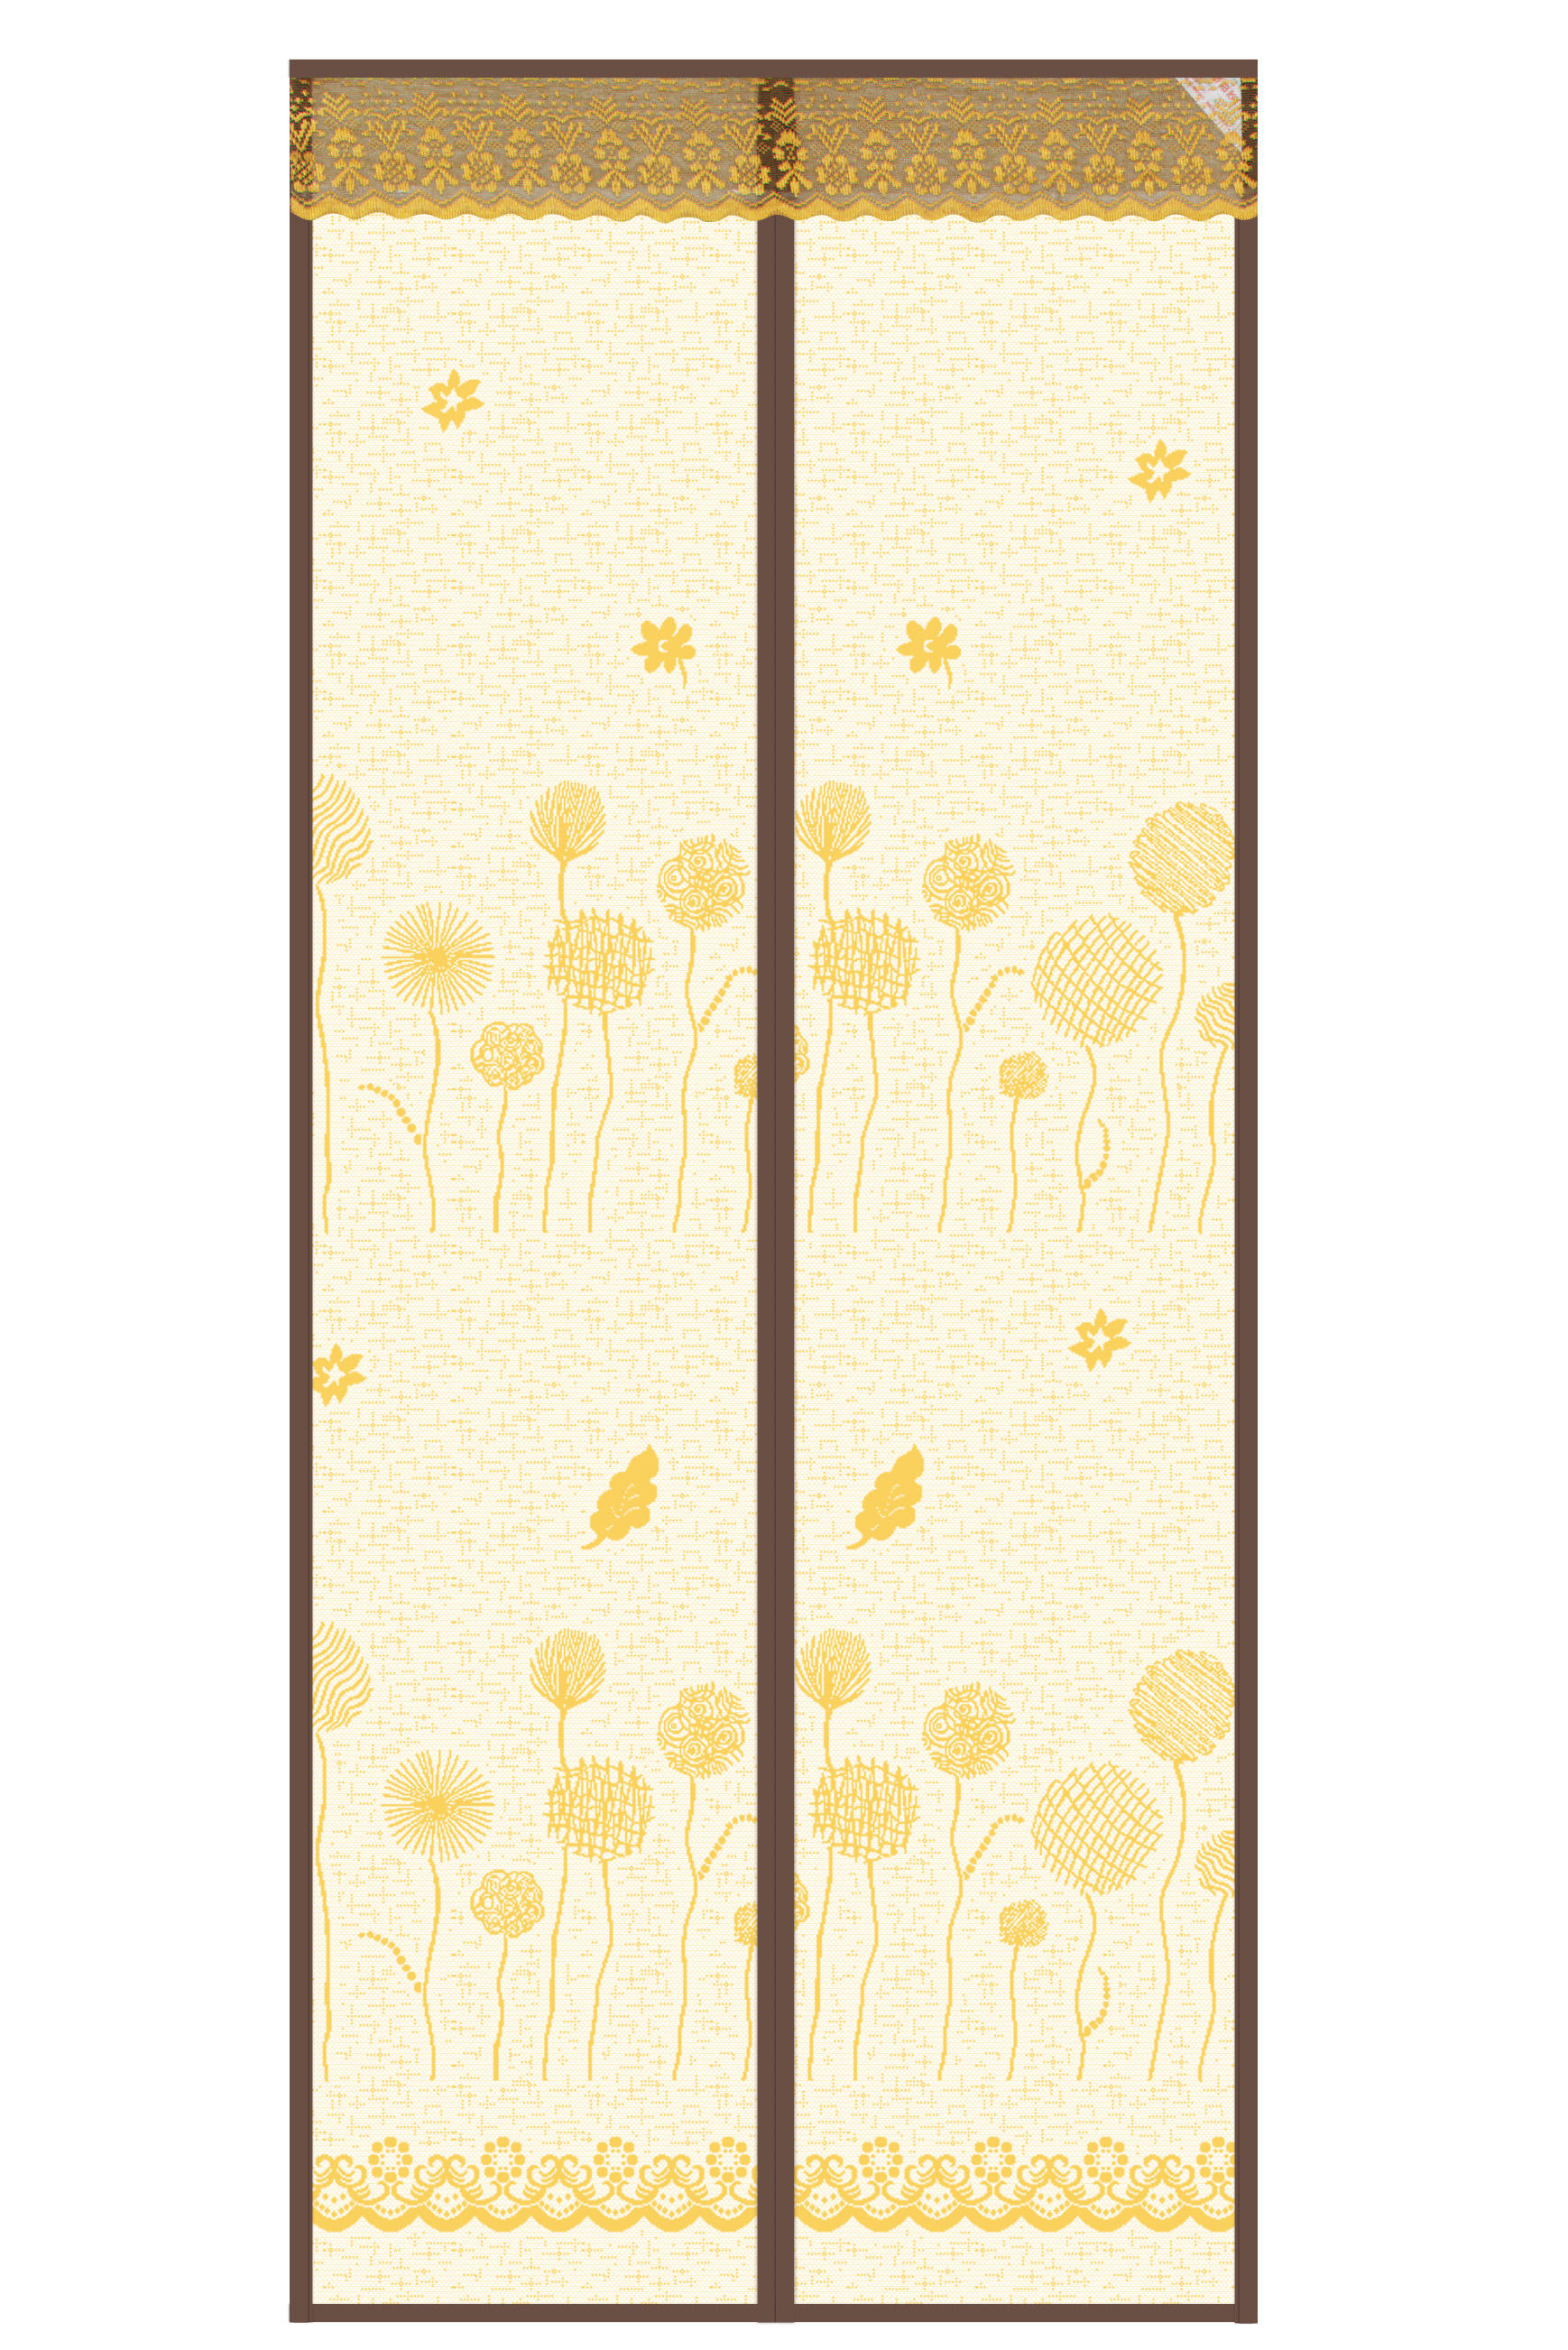 Striped cloth New 2020 Door Curtain-Dandelion magnetic soft yarn Door curtain-brown